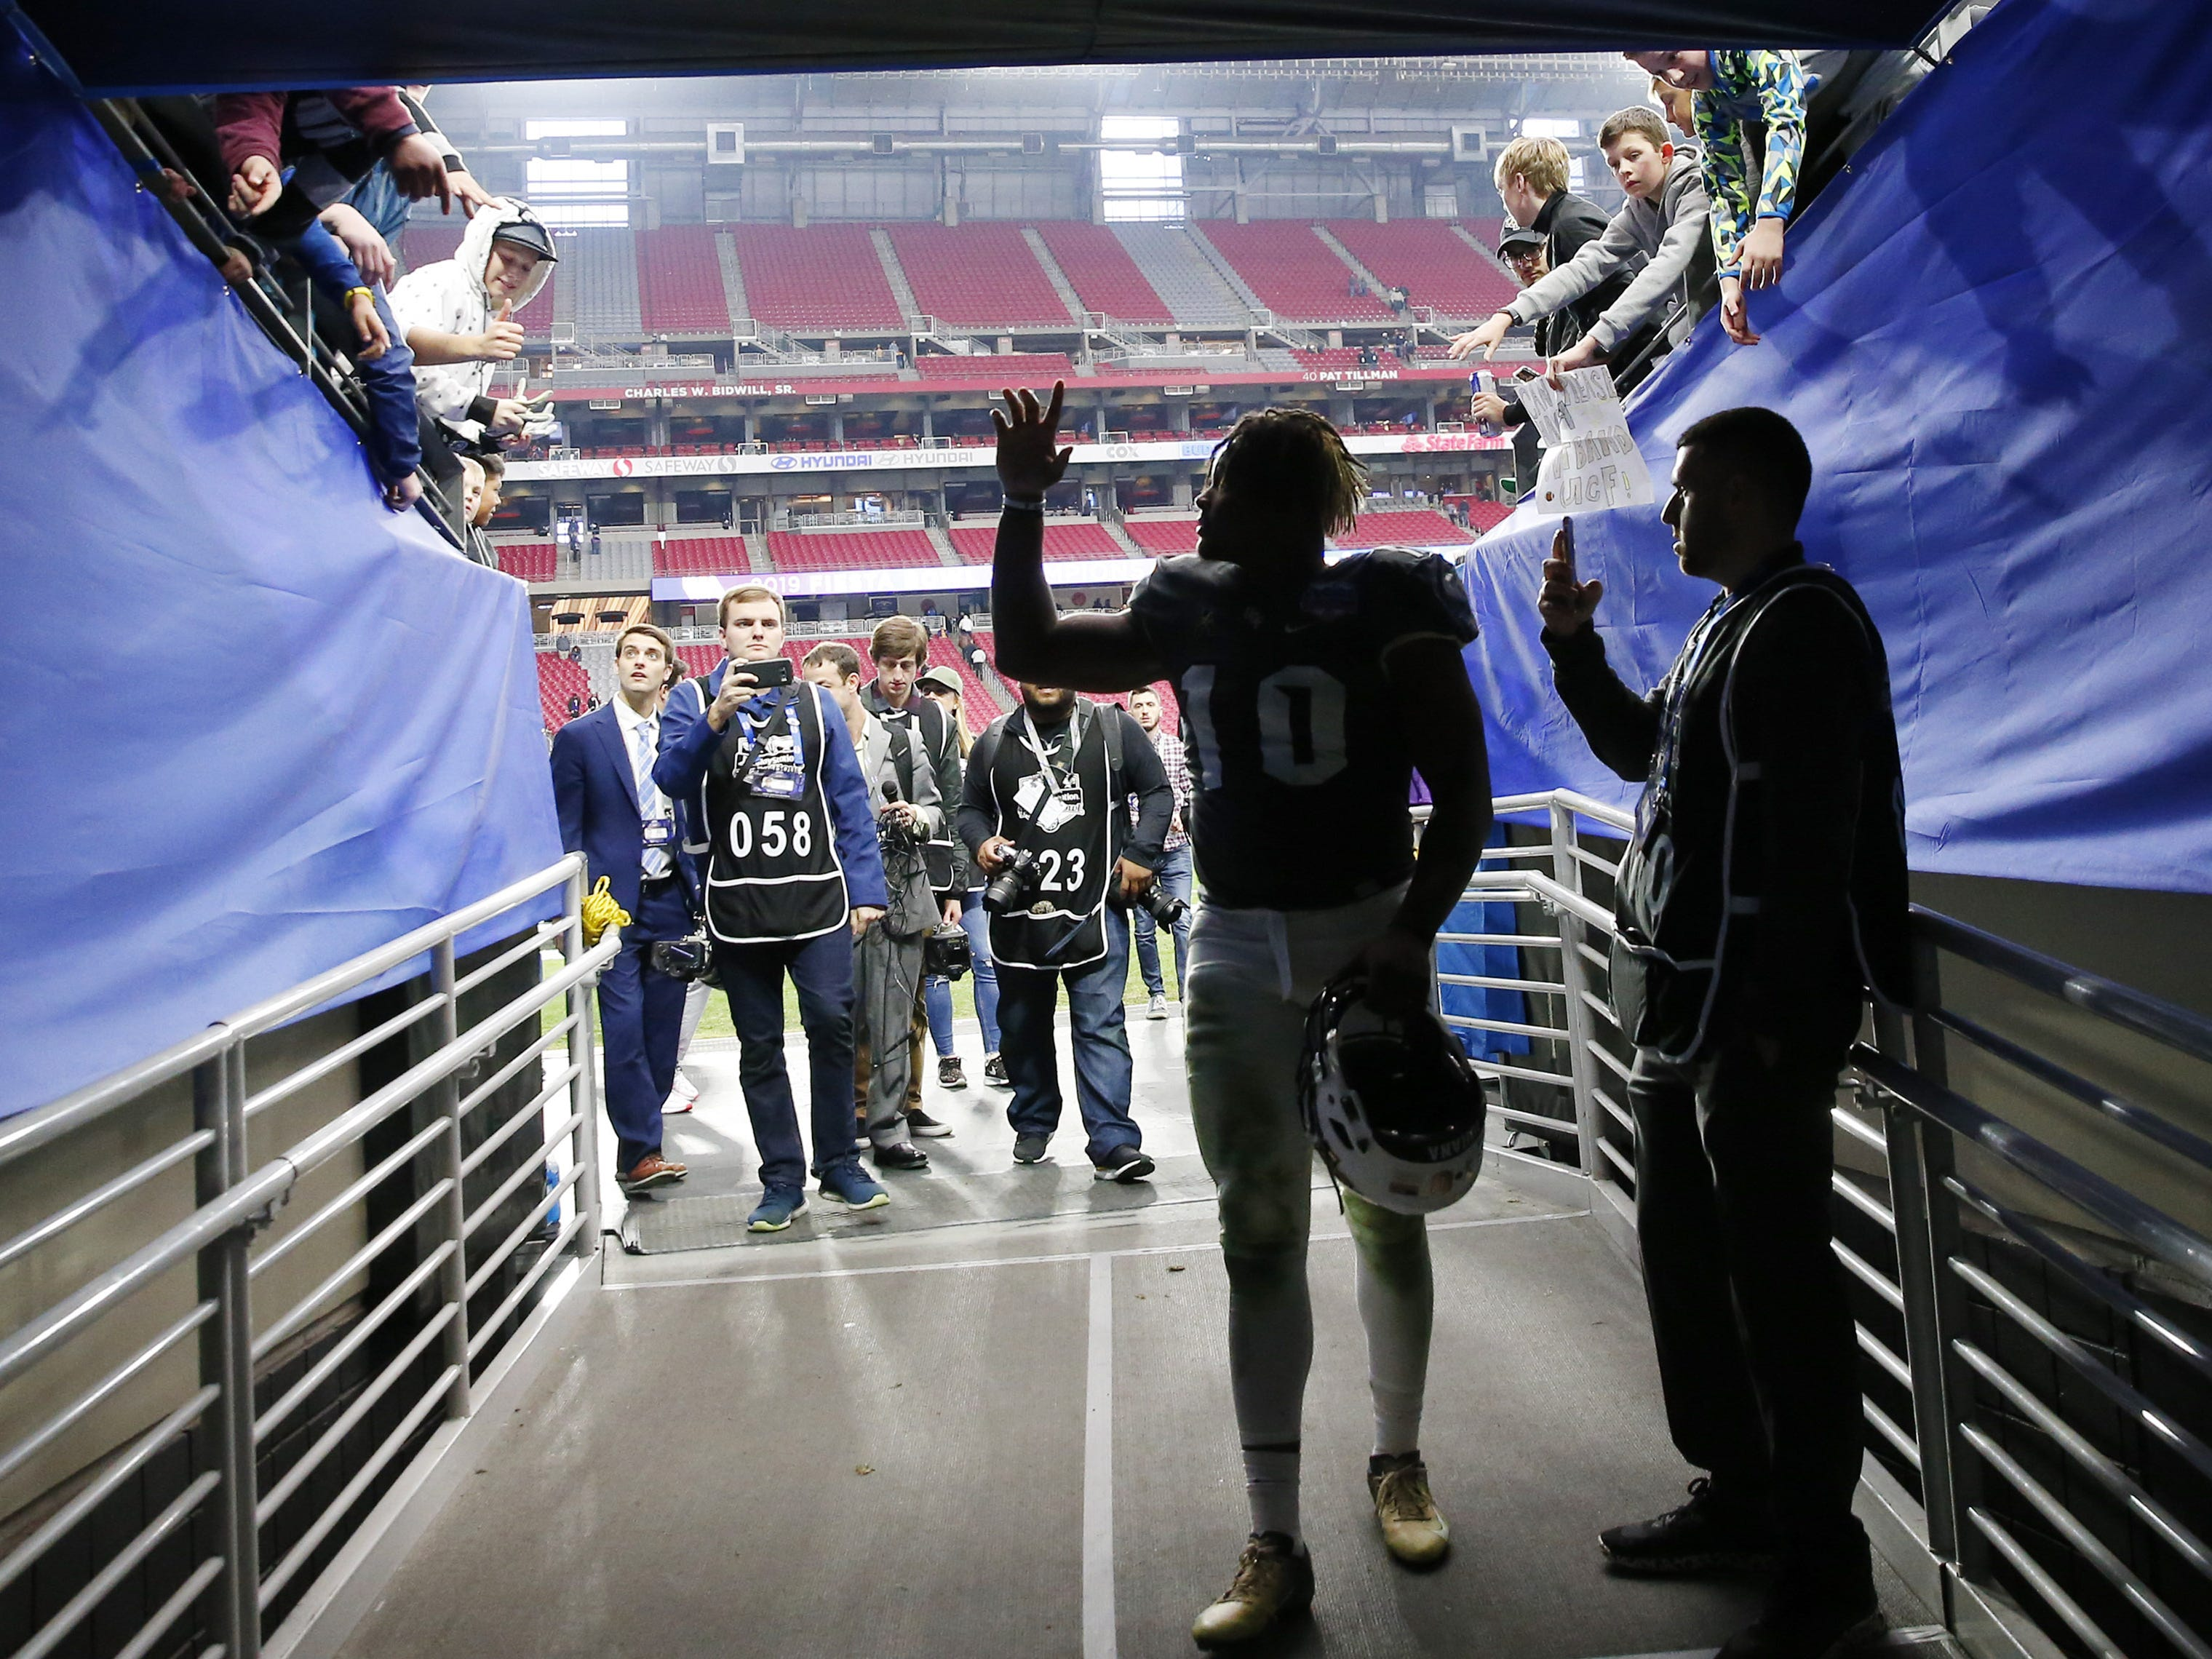 UCF defensive lineman Titus Davis (10) waves to fans while walking off the field after losing to LSU in the Fiesta Bowl in Glendale January 1, 2019. LSU won 40-32.